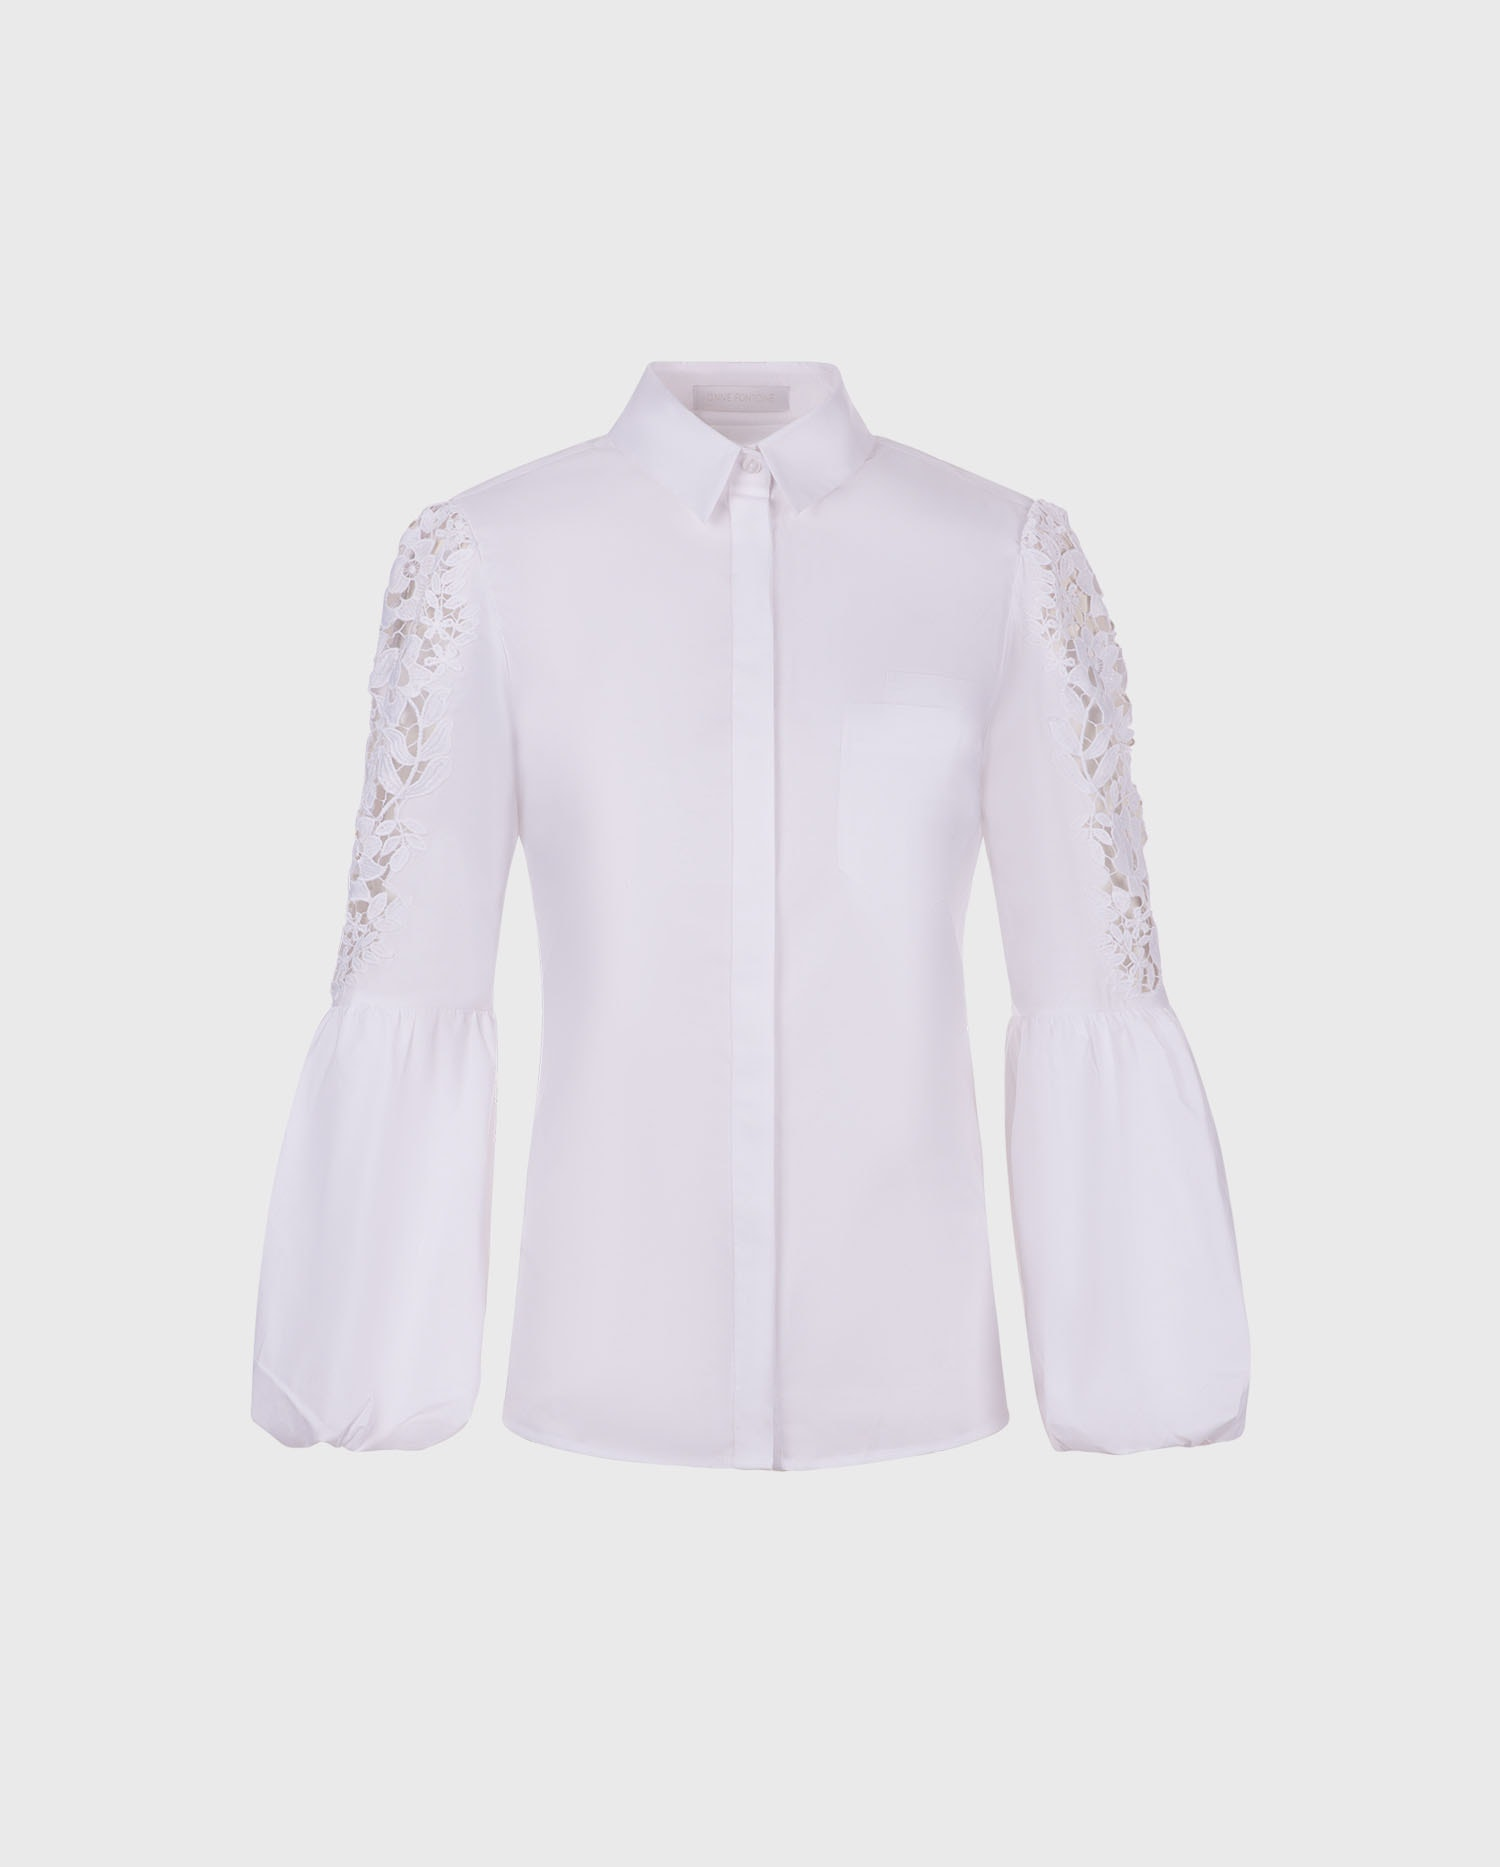 The LAORA white embroidered sleeve shirt is the perfect silhouette to add to your wardrobe.